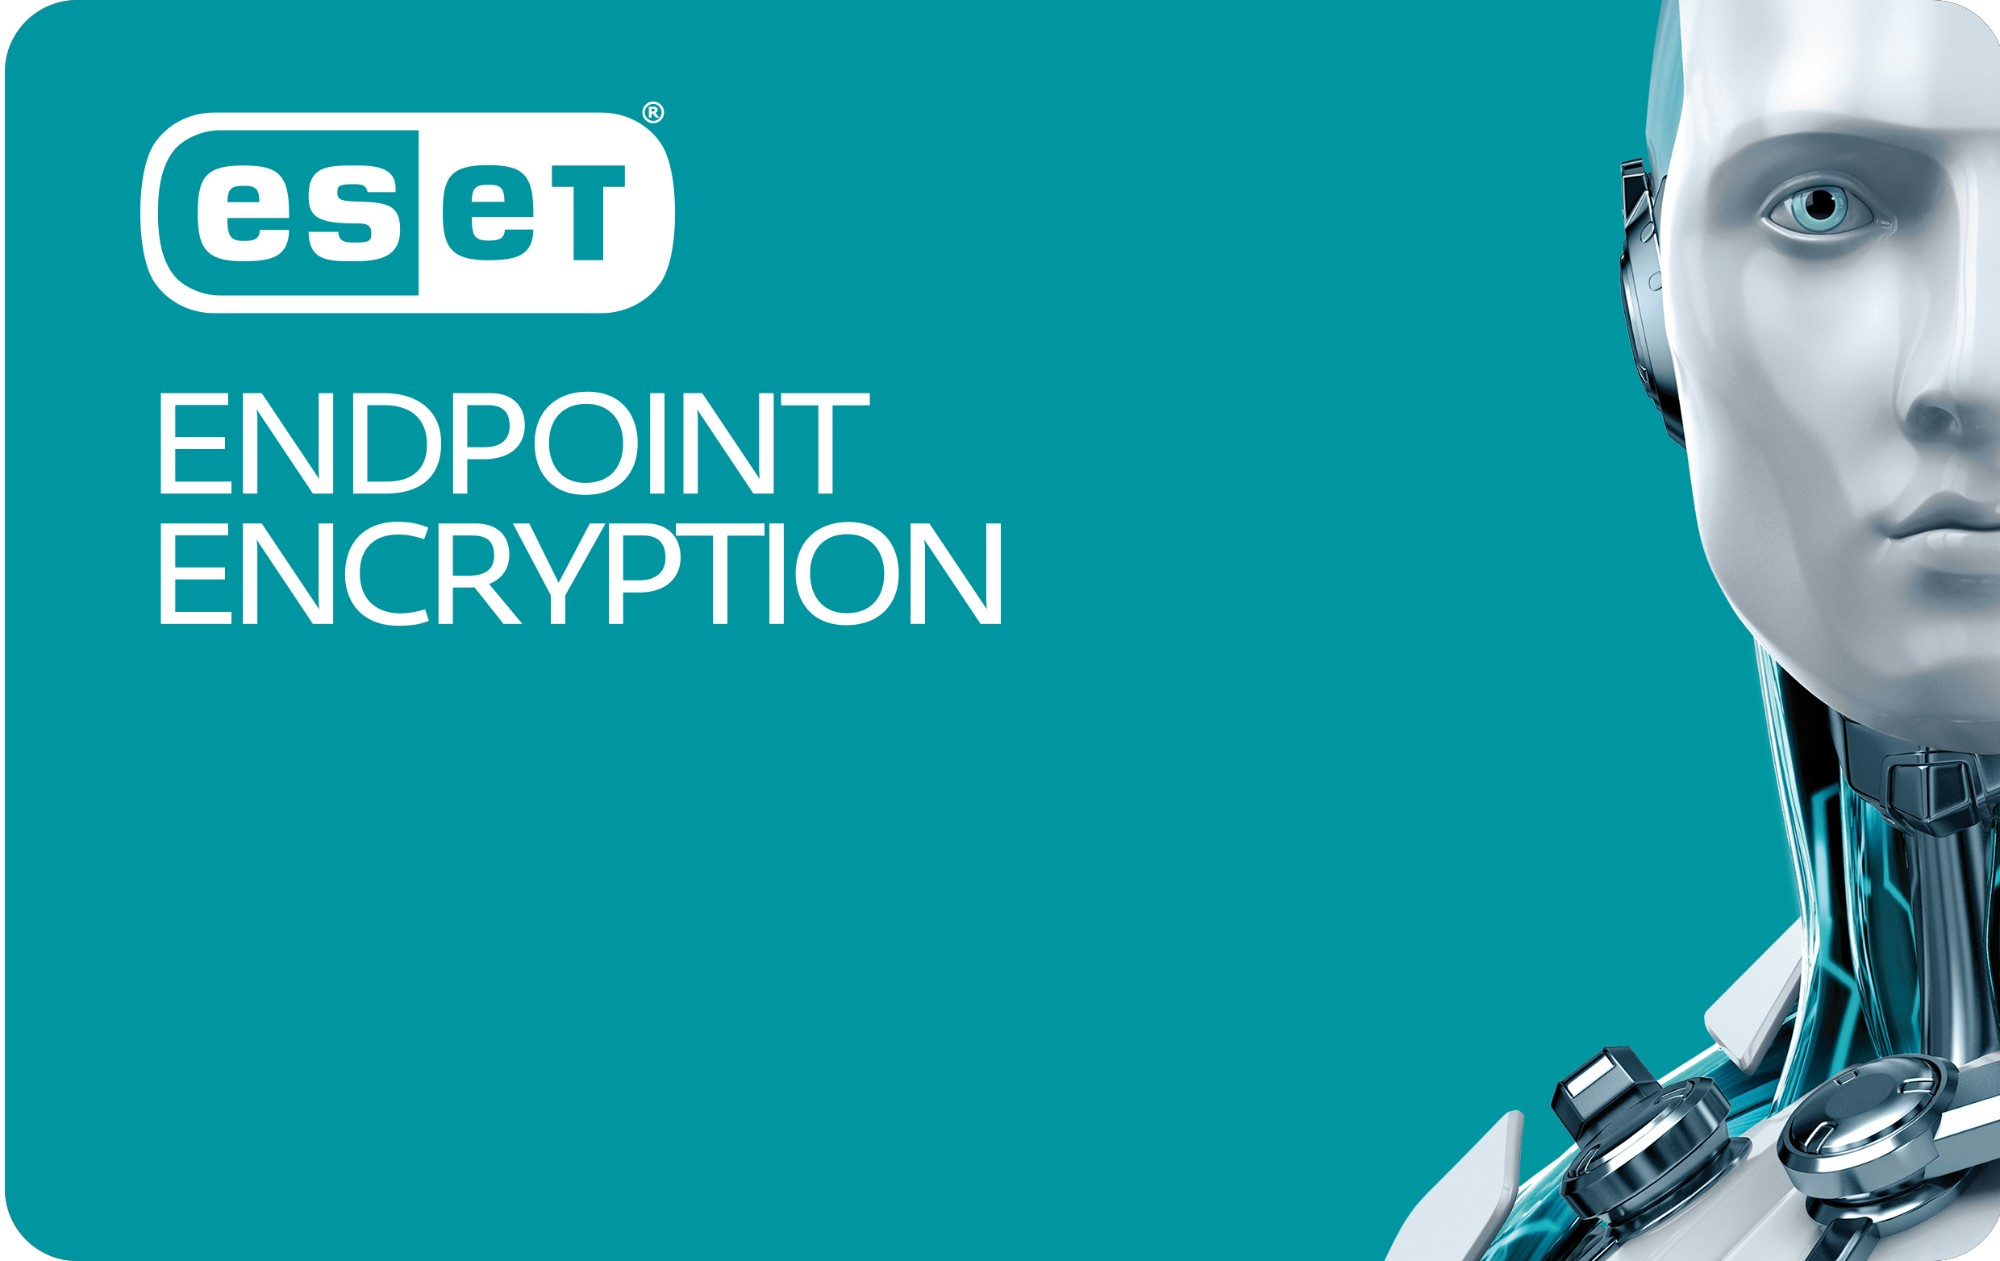 ESET Endpoint Encryption Pro 2000 - 4999 User Government (GOV) license 2000 - 4999 license(s) 2 year(s)